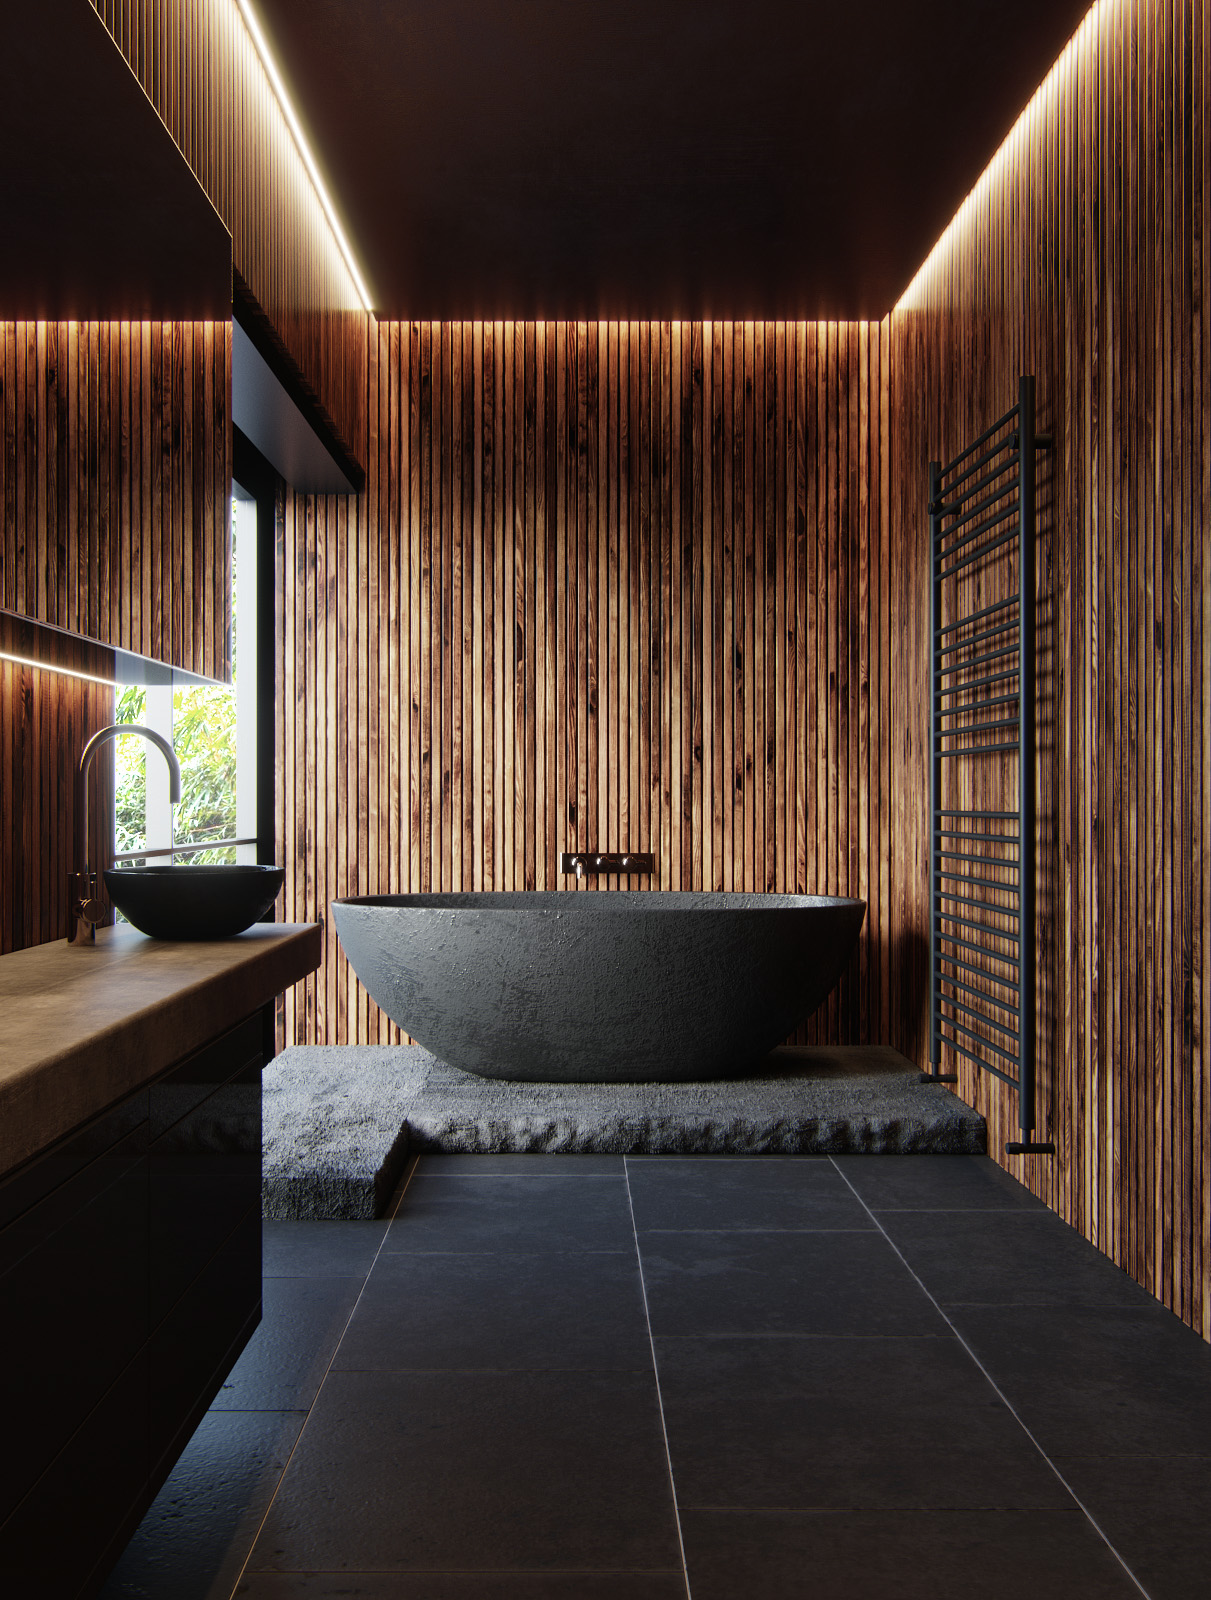 The Teak Tub Deck And Black Tile Walls Are Amazing Together.